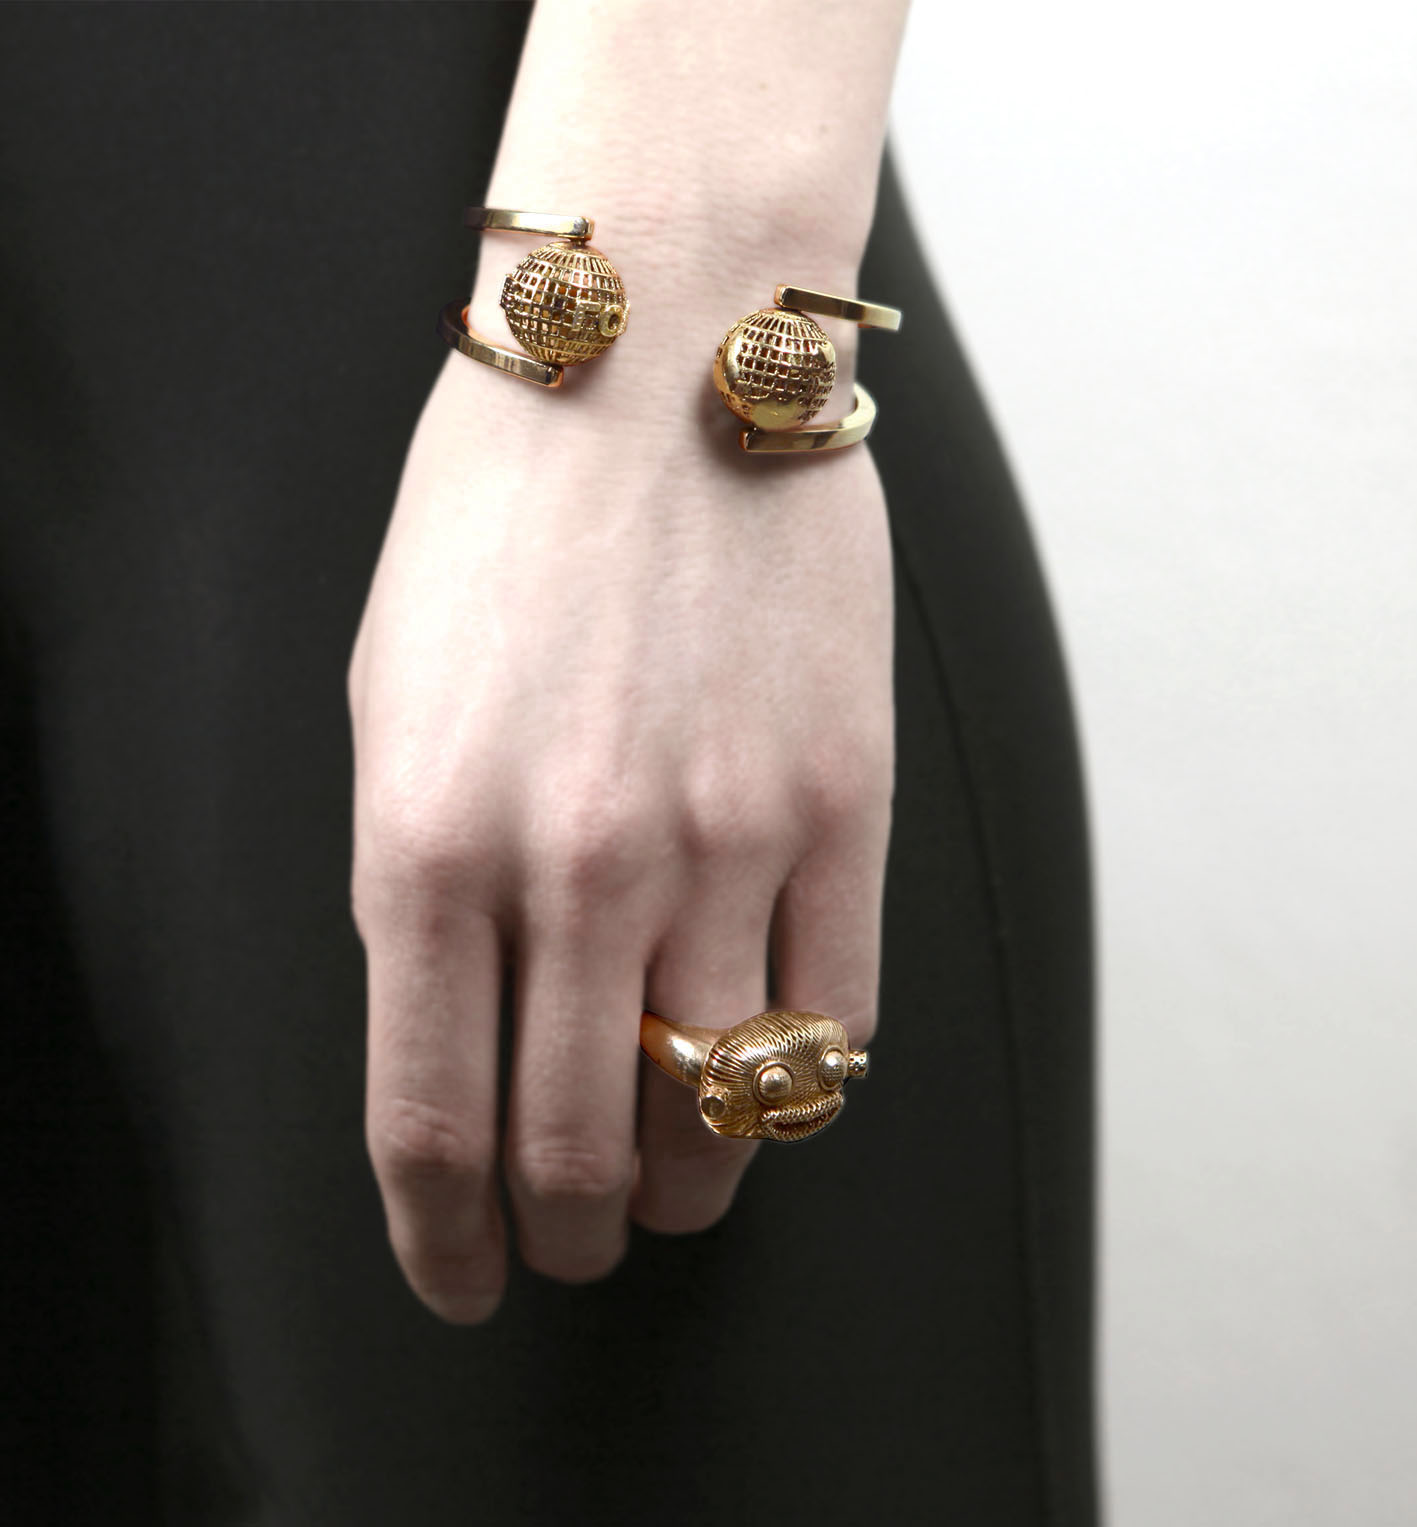 Jewelry 04 - Maissa by Giulia Ber Tacchini Italian Custom Jewels and Luxury